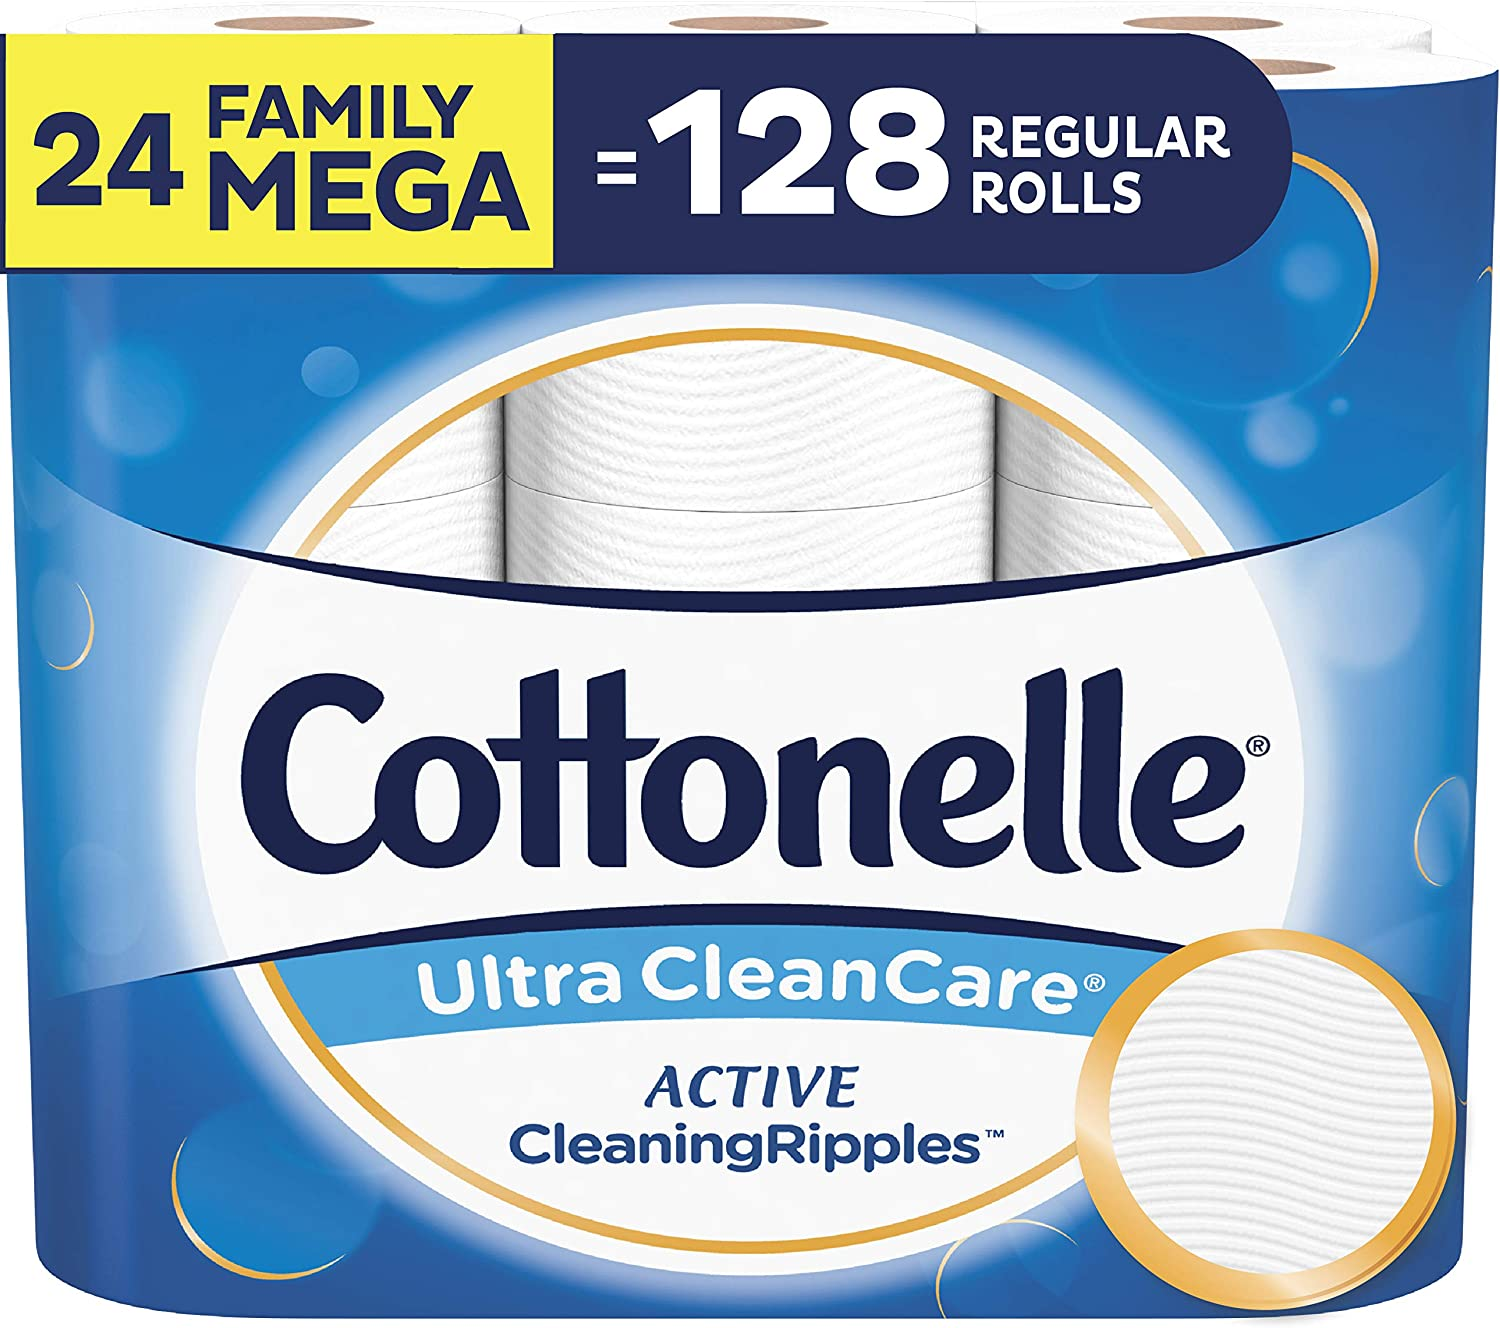 Cottonelle Ultra CleanCare Toilet Paper with Active CleaningRipples, Strong Biodegradable Bath Tissue, Septic-Safe, 24 Family Mega Rolls